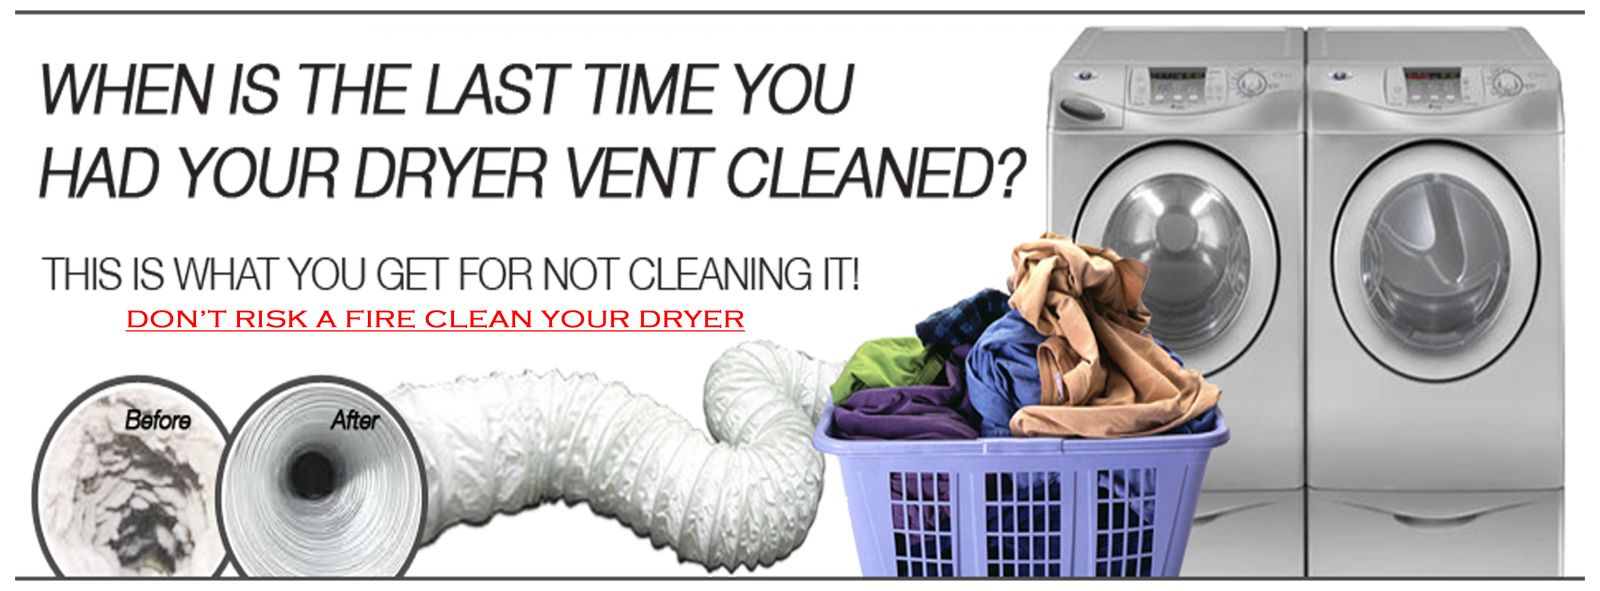 Dryer Vent Cleaning in Beavercreek OH